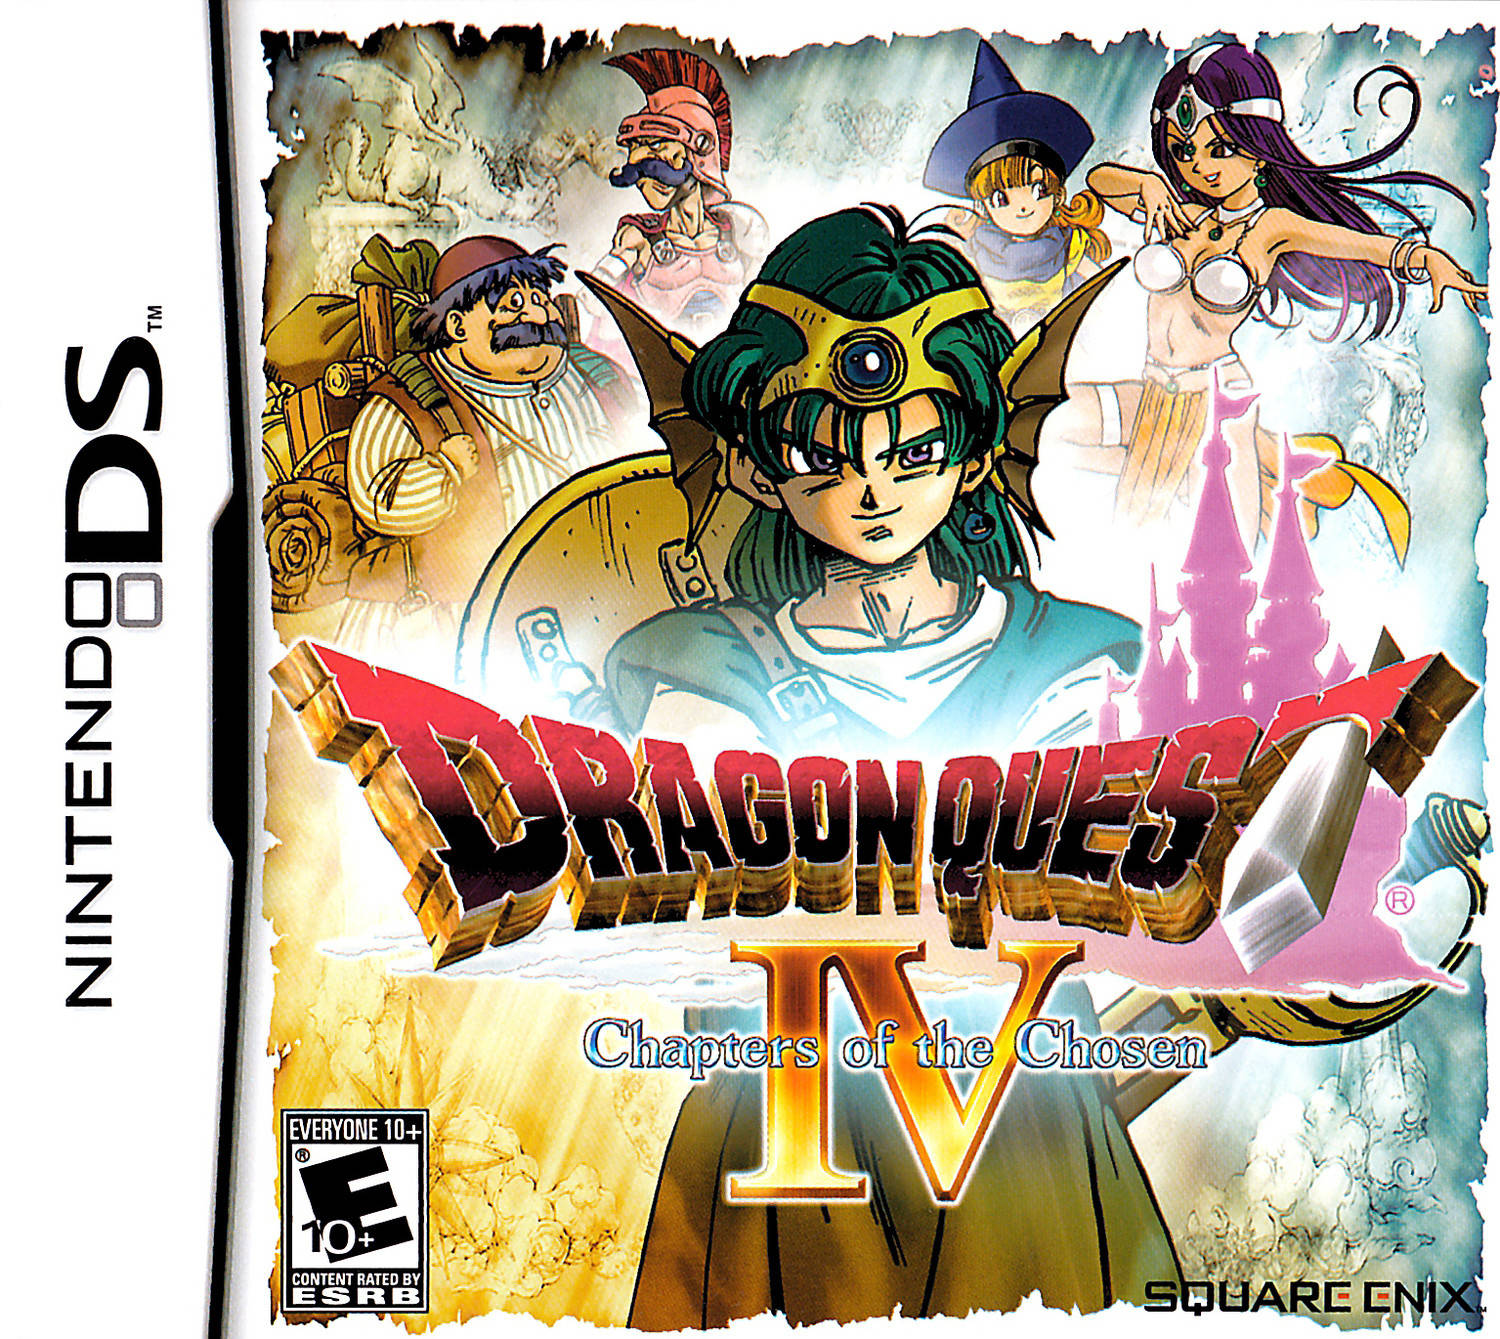 Dragon Quest IV: Chapters of the Chosen - Nintendo DS game